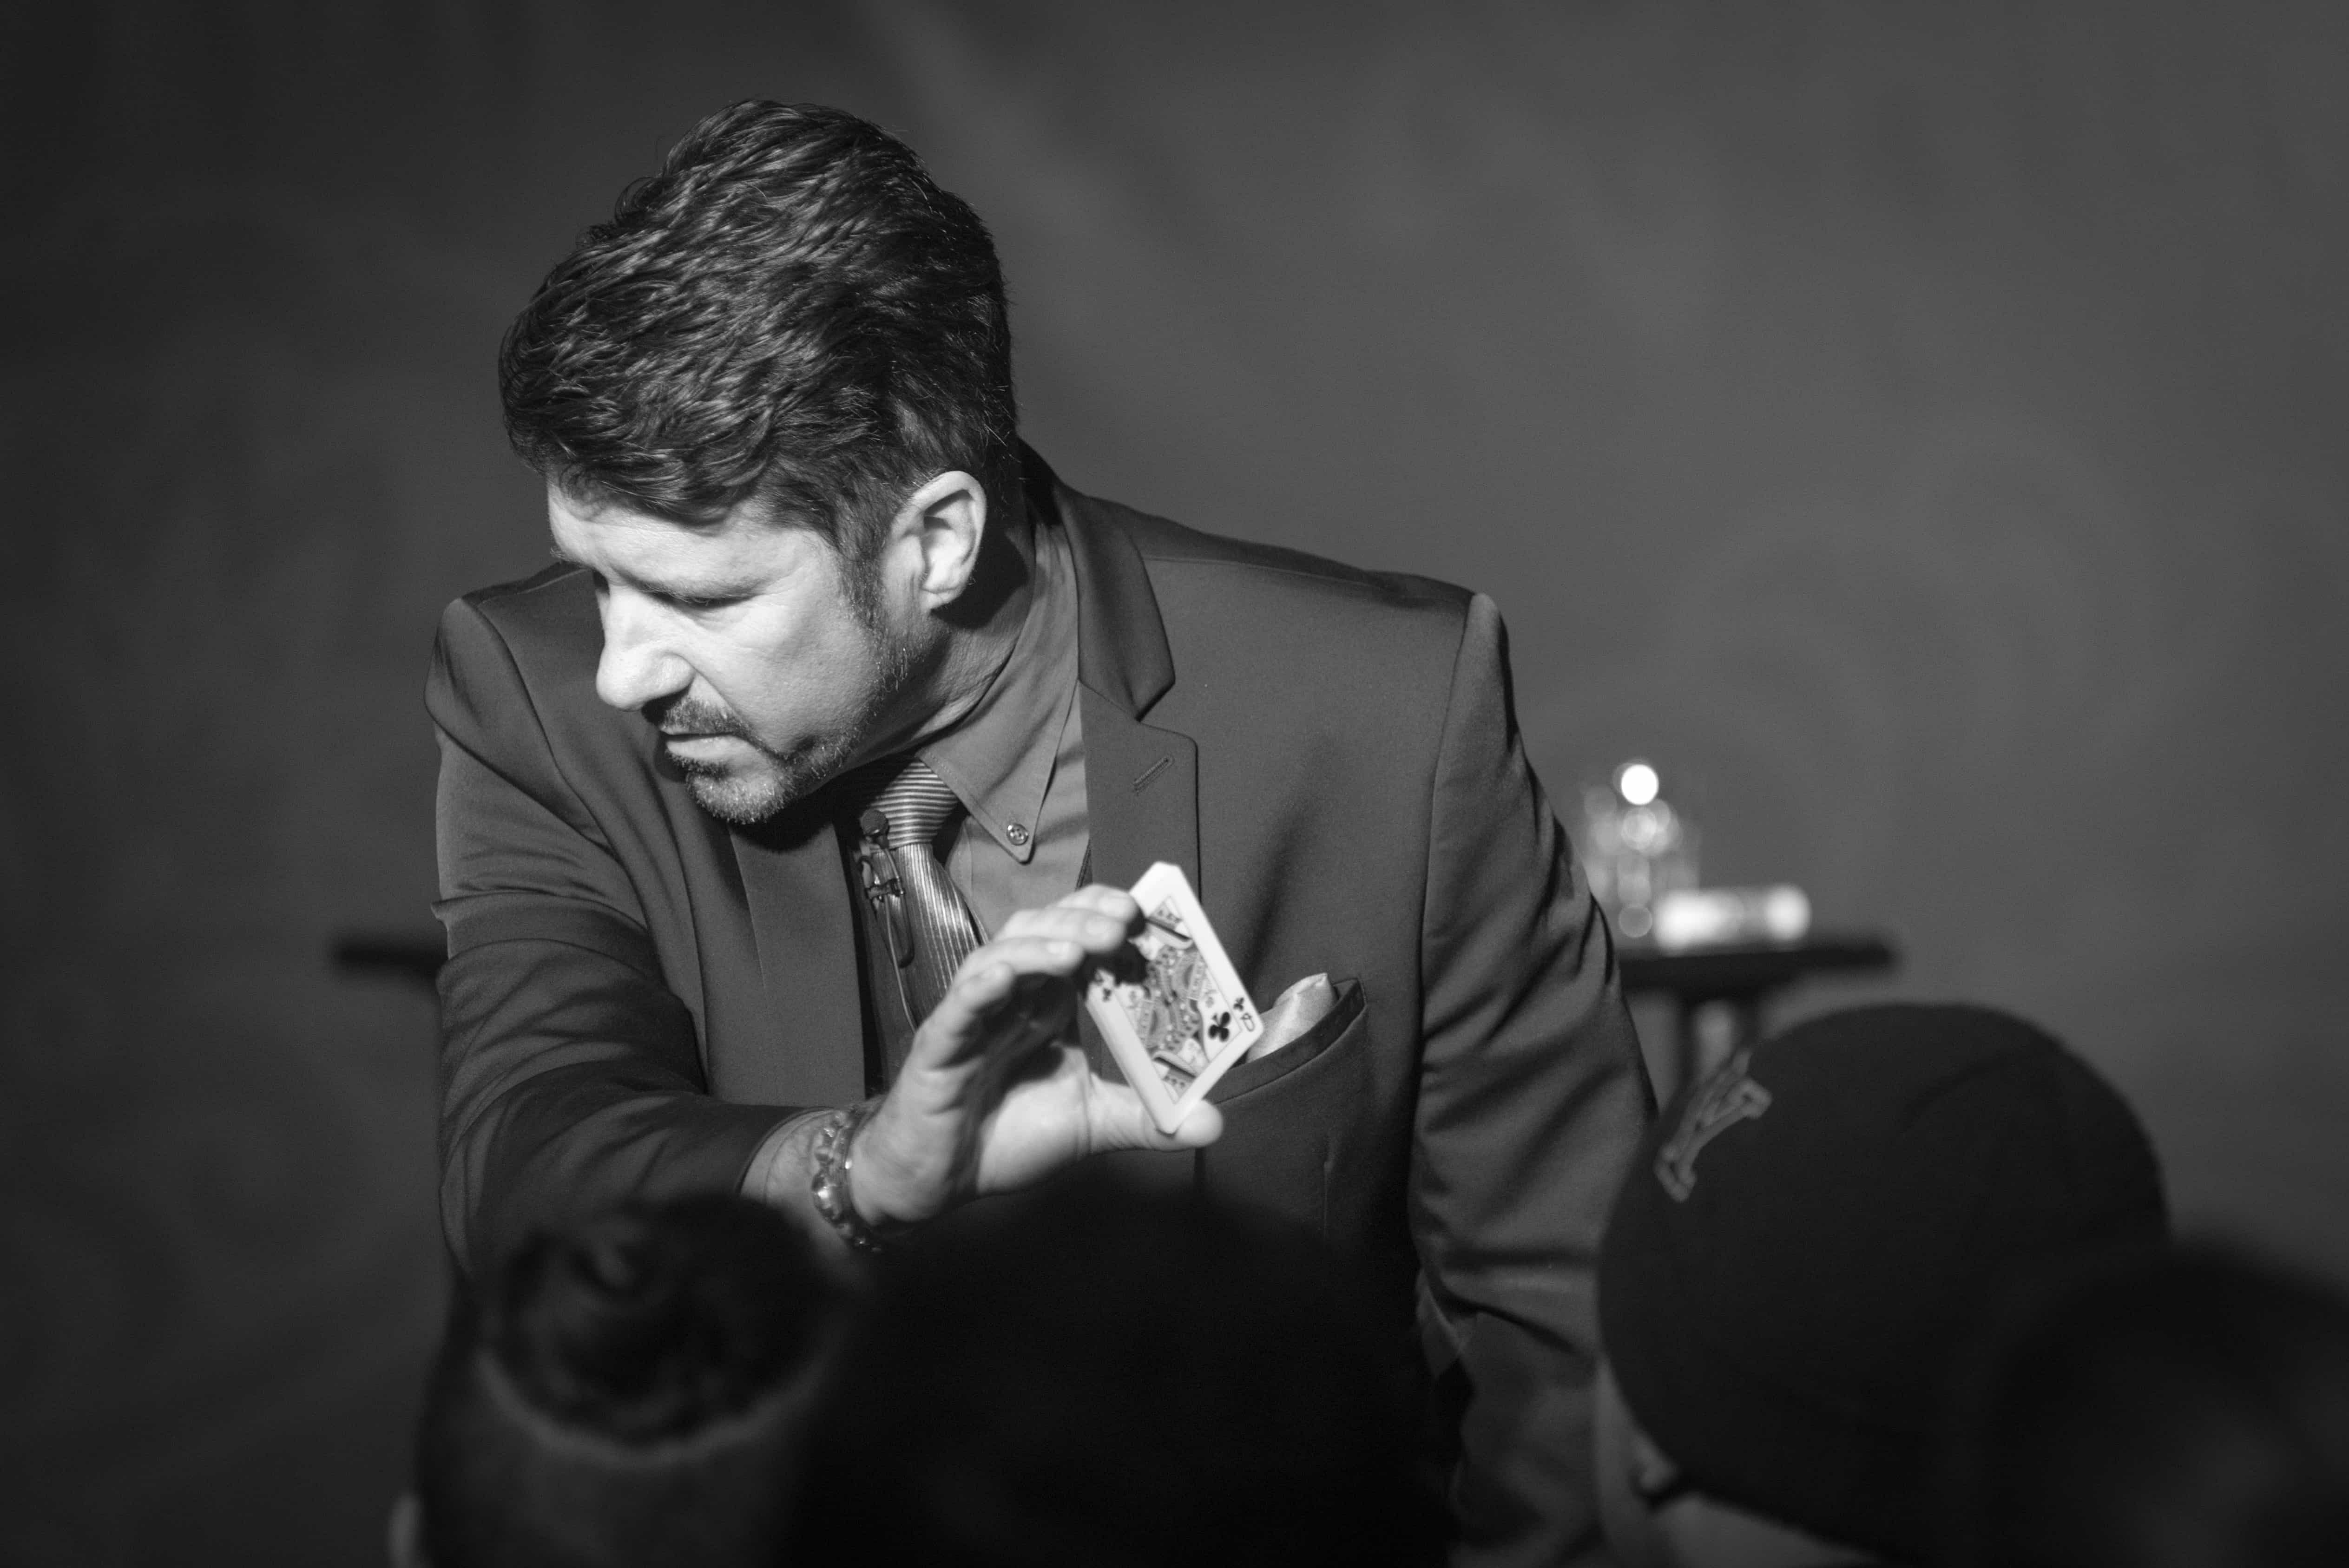 Mentalist Banachek shows a queen of clubs to the audience during a stage magic performance